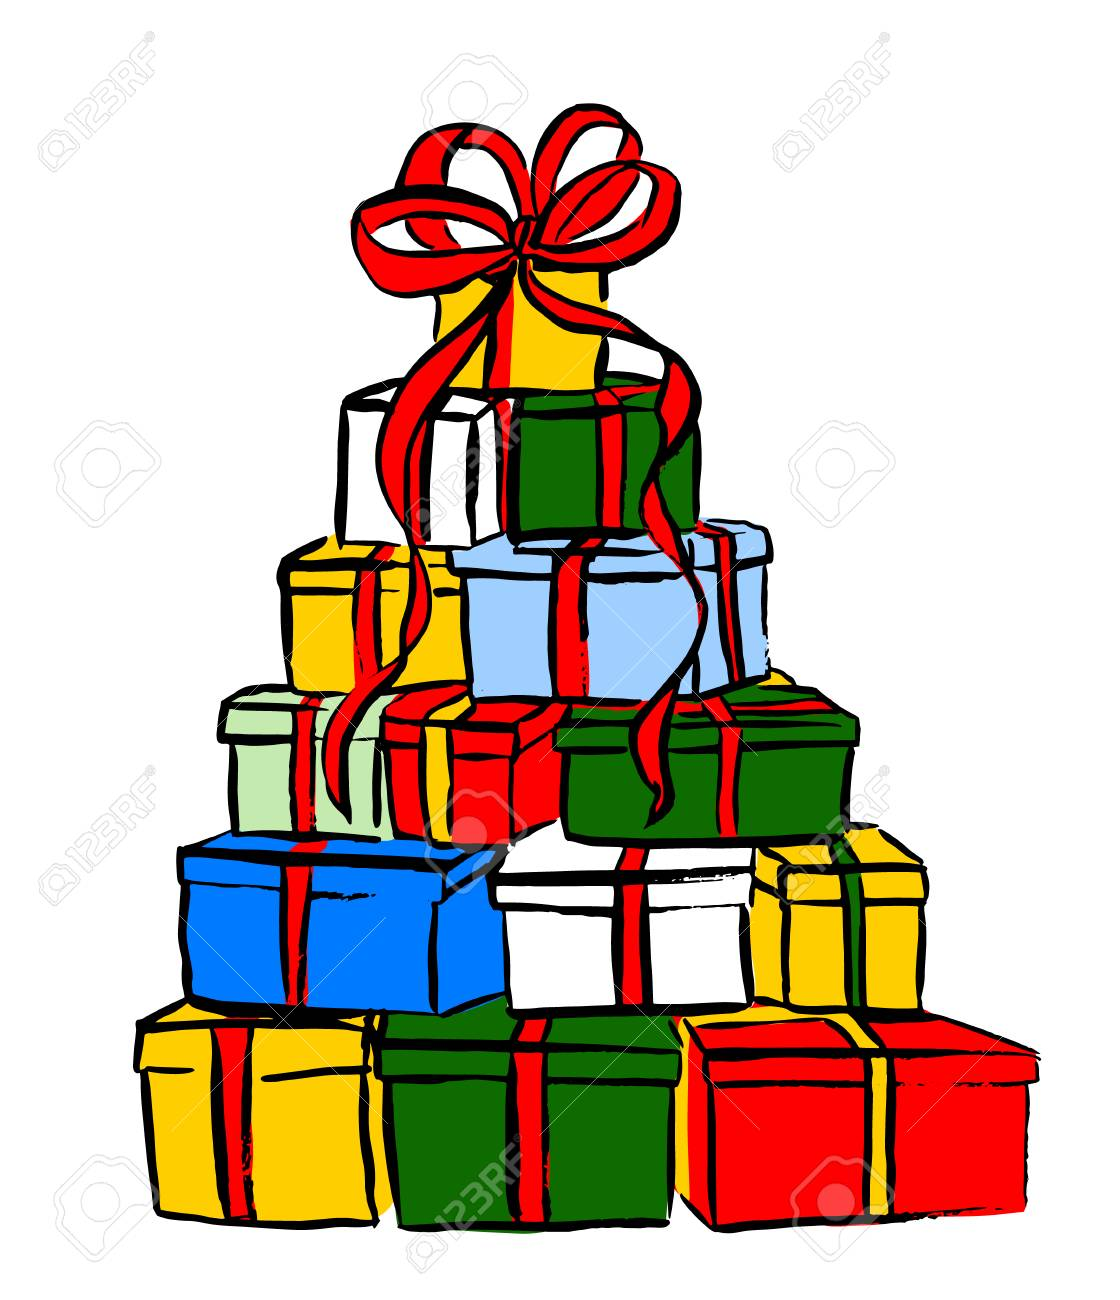 Stack Of Christmas Gifts Ink Sketch Isolated N White Clip Art Royalty Free Cliparts Vectors And Stock Illustration Image 49590145